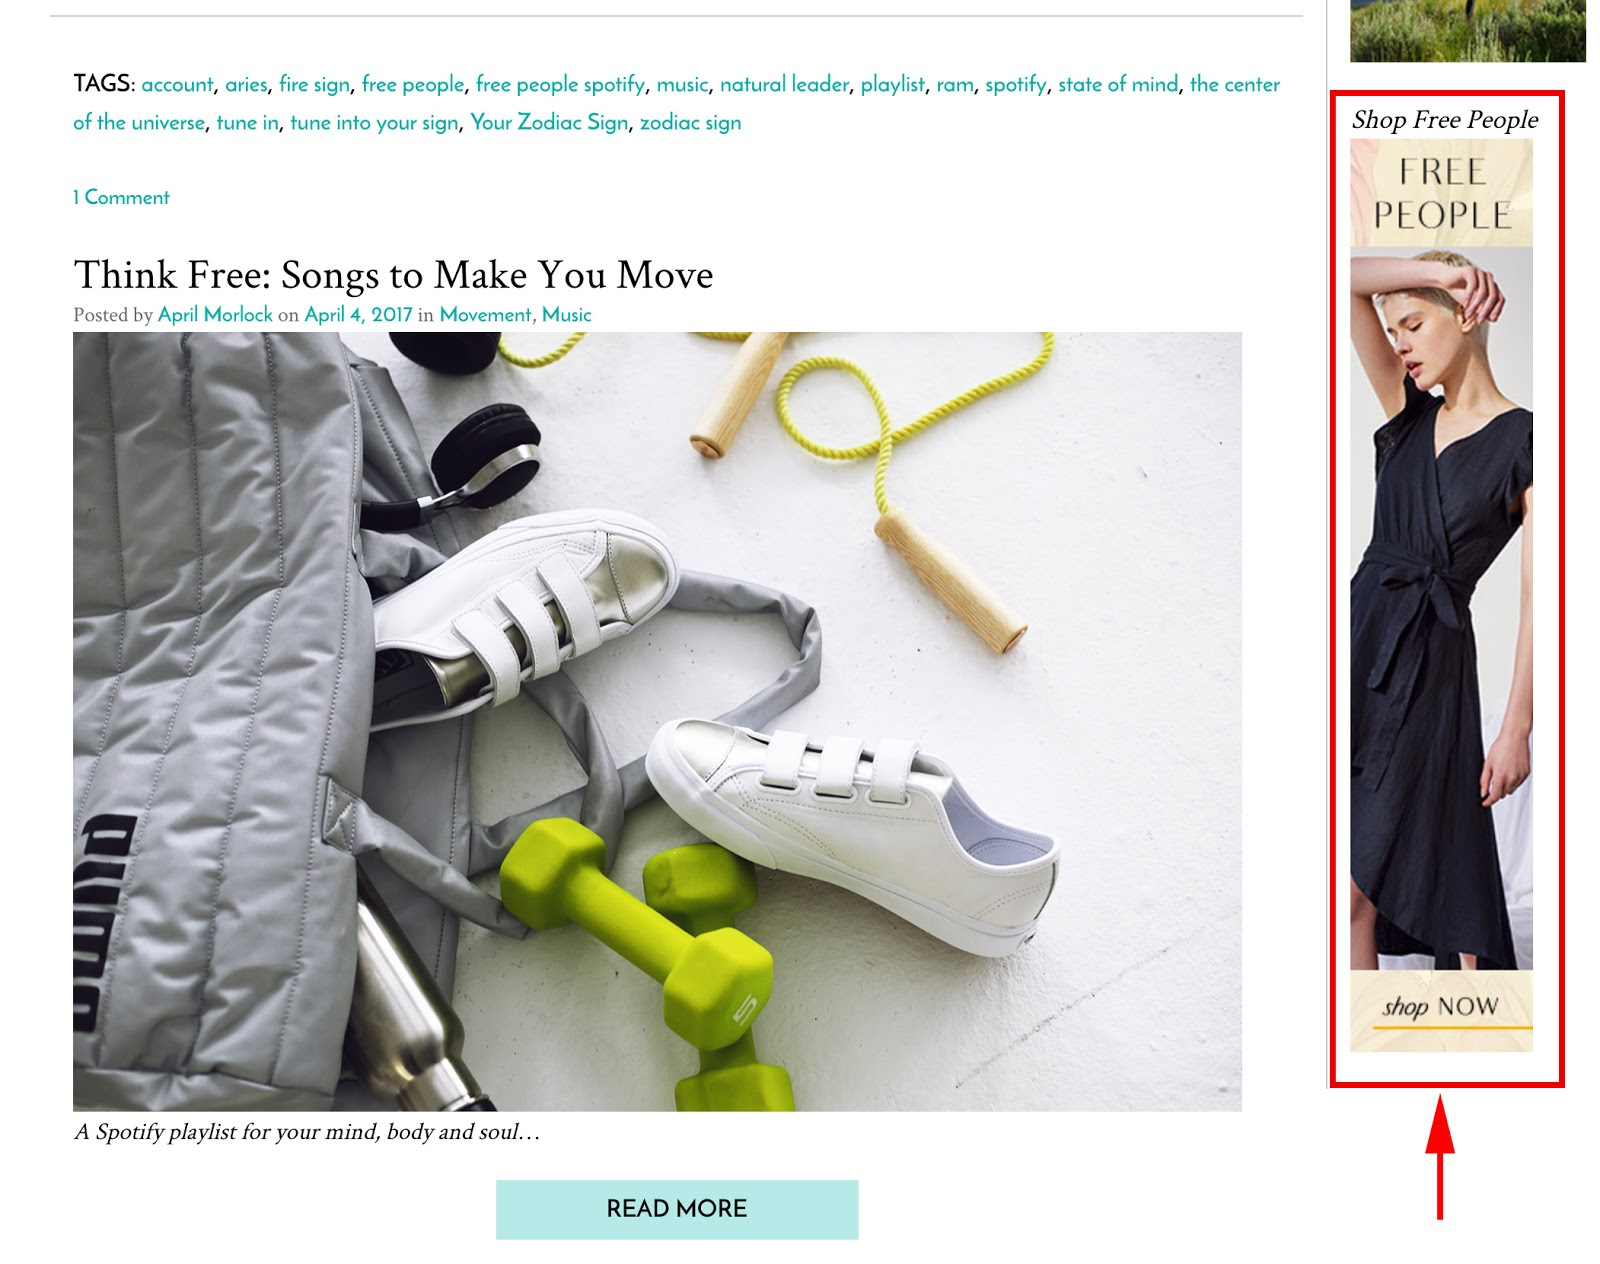 Image of the Free People's blog high-conversion funnel